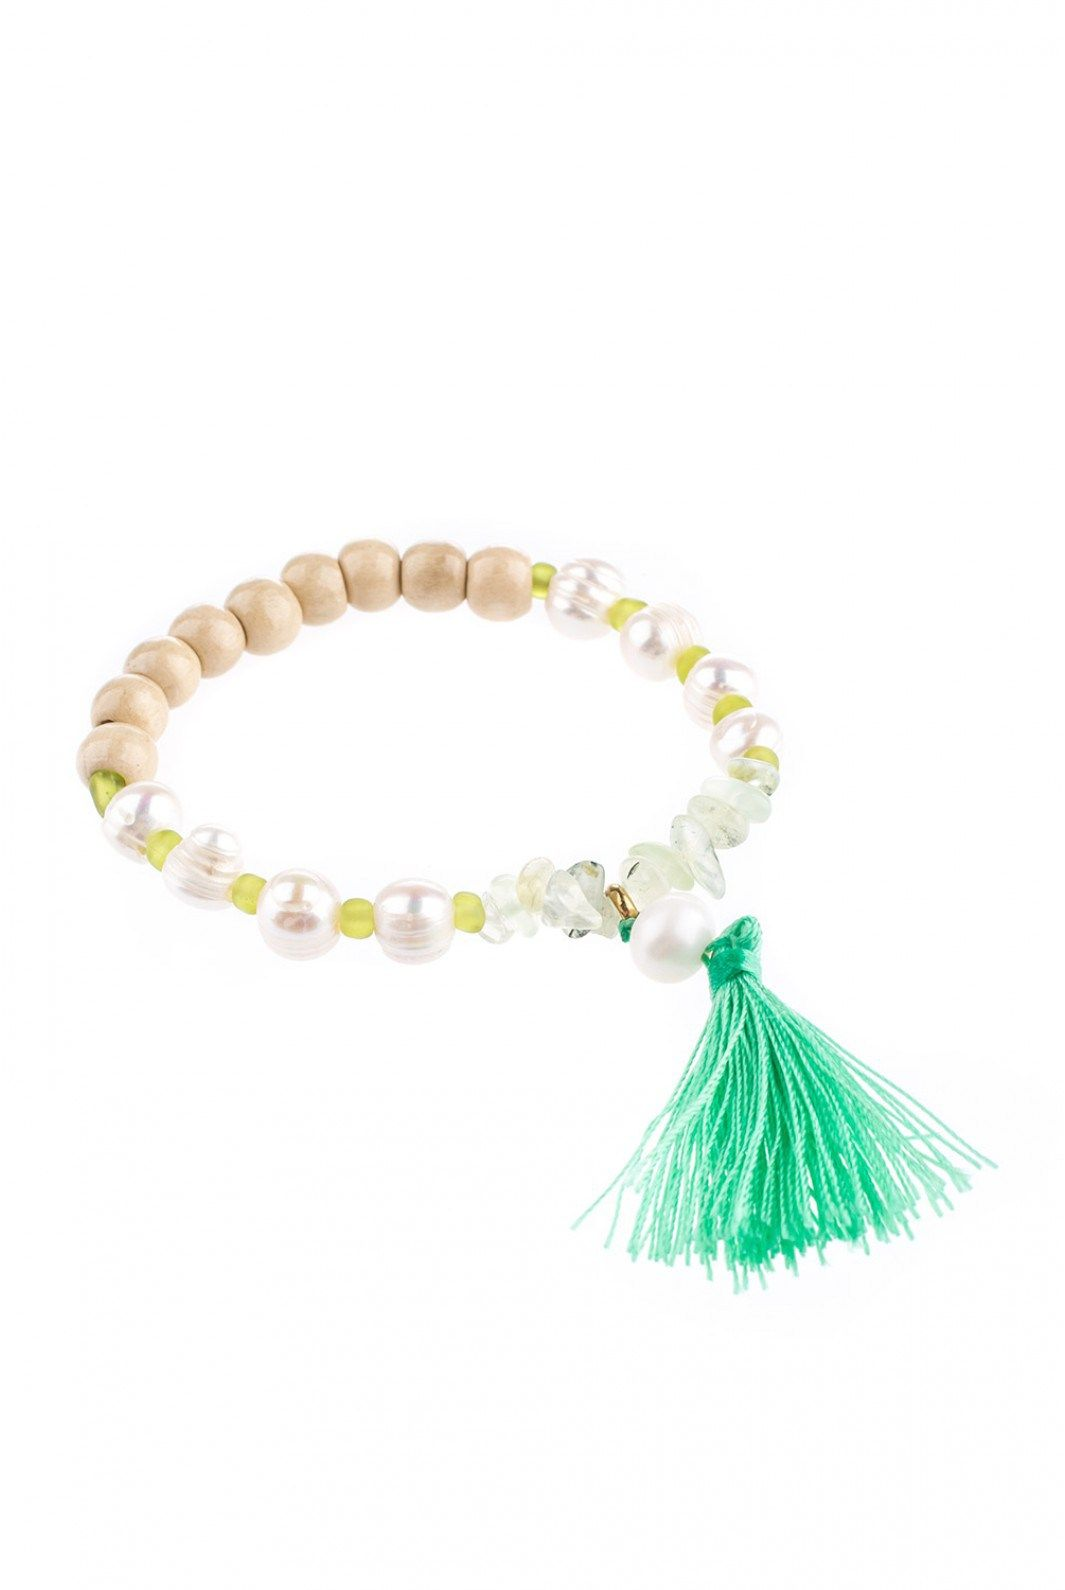 Type 1 Green And Gleeful Bracelet - New Arrivals